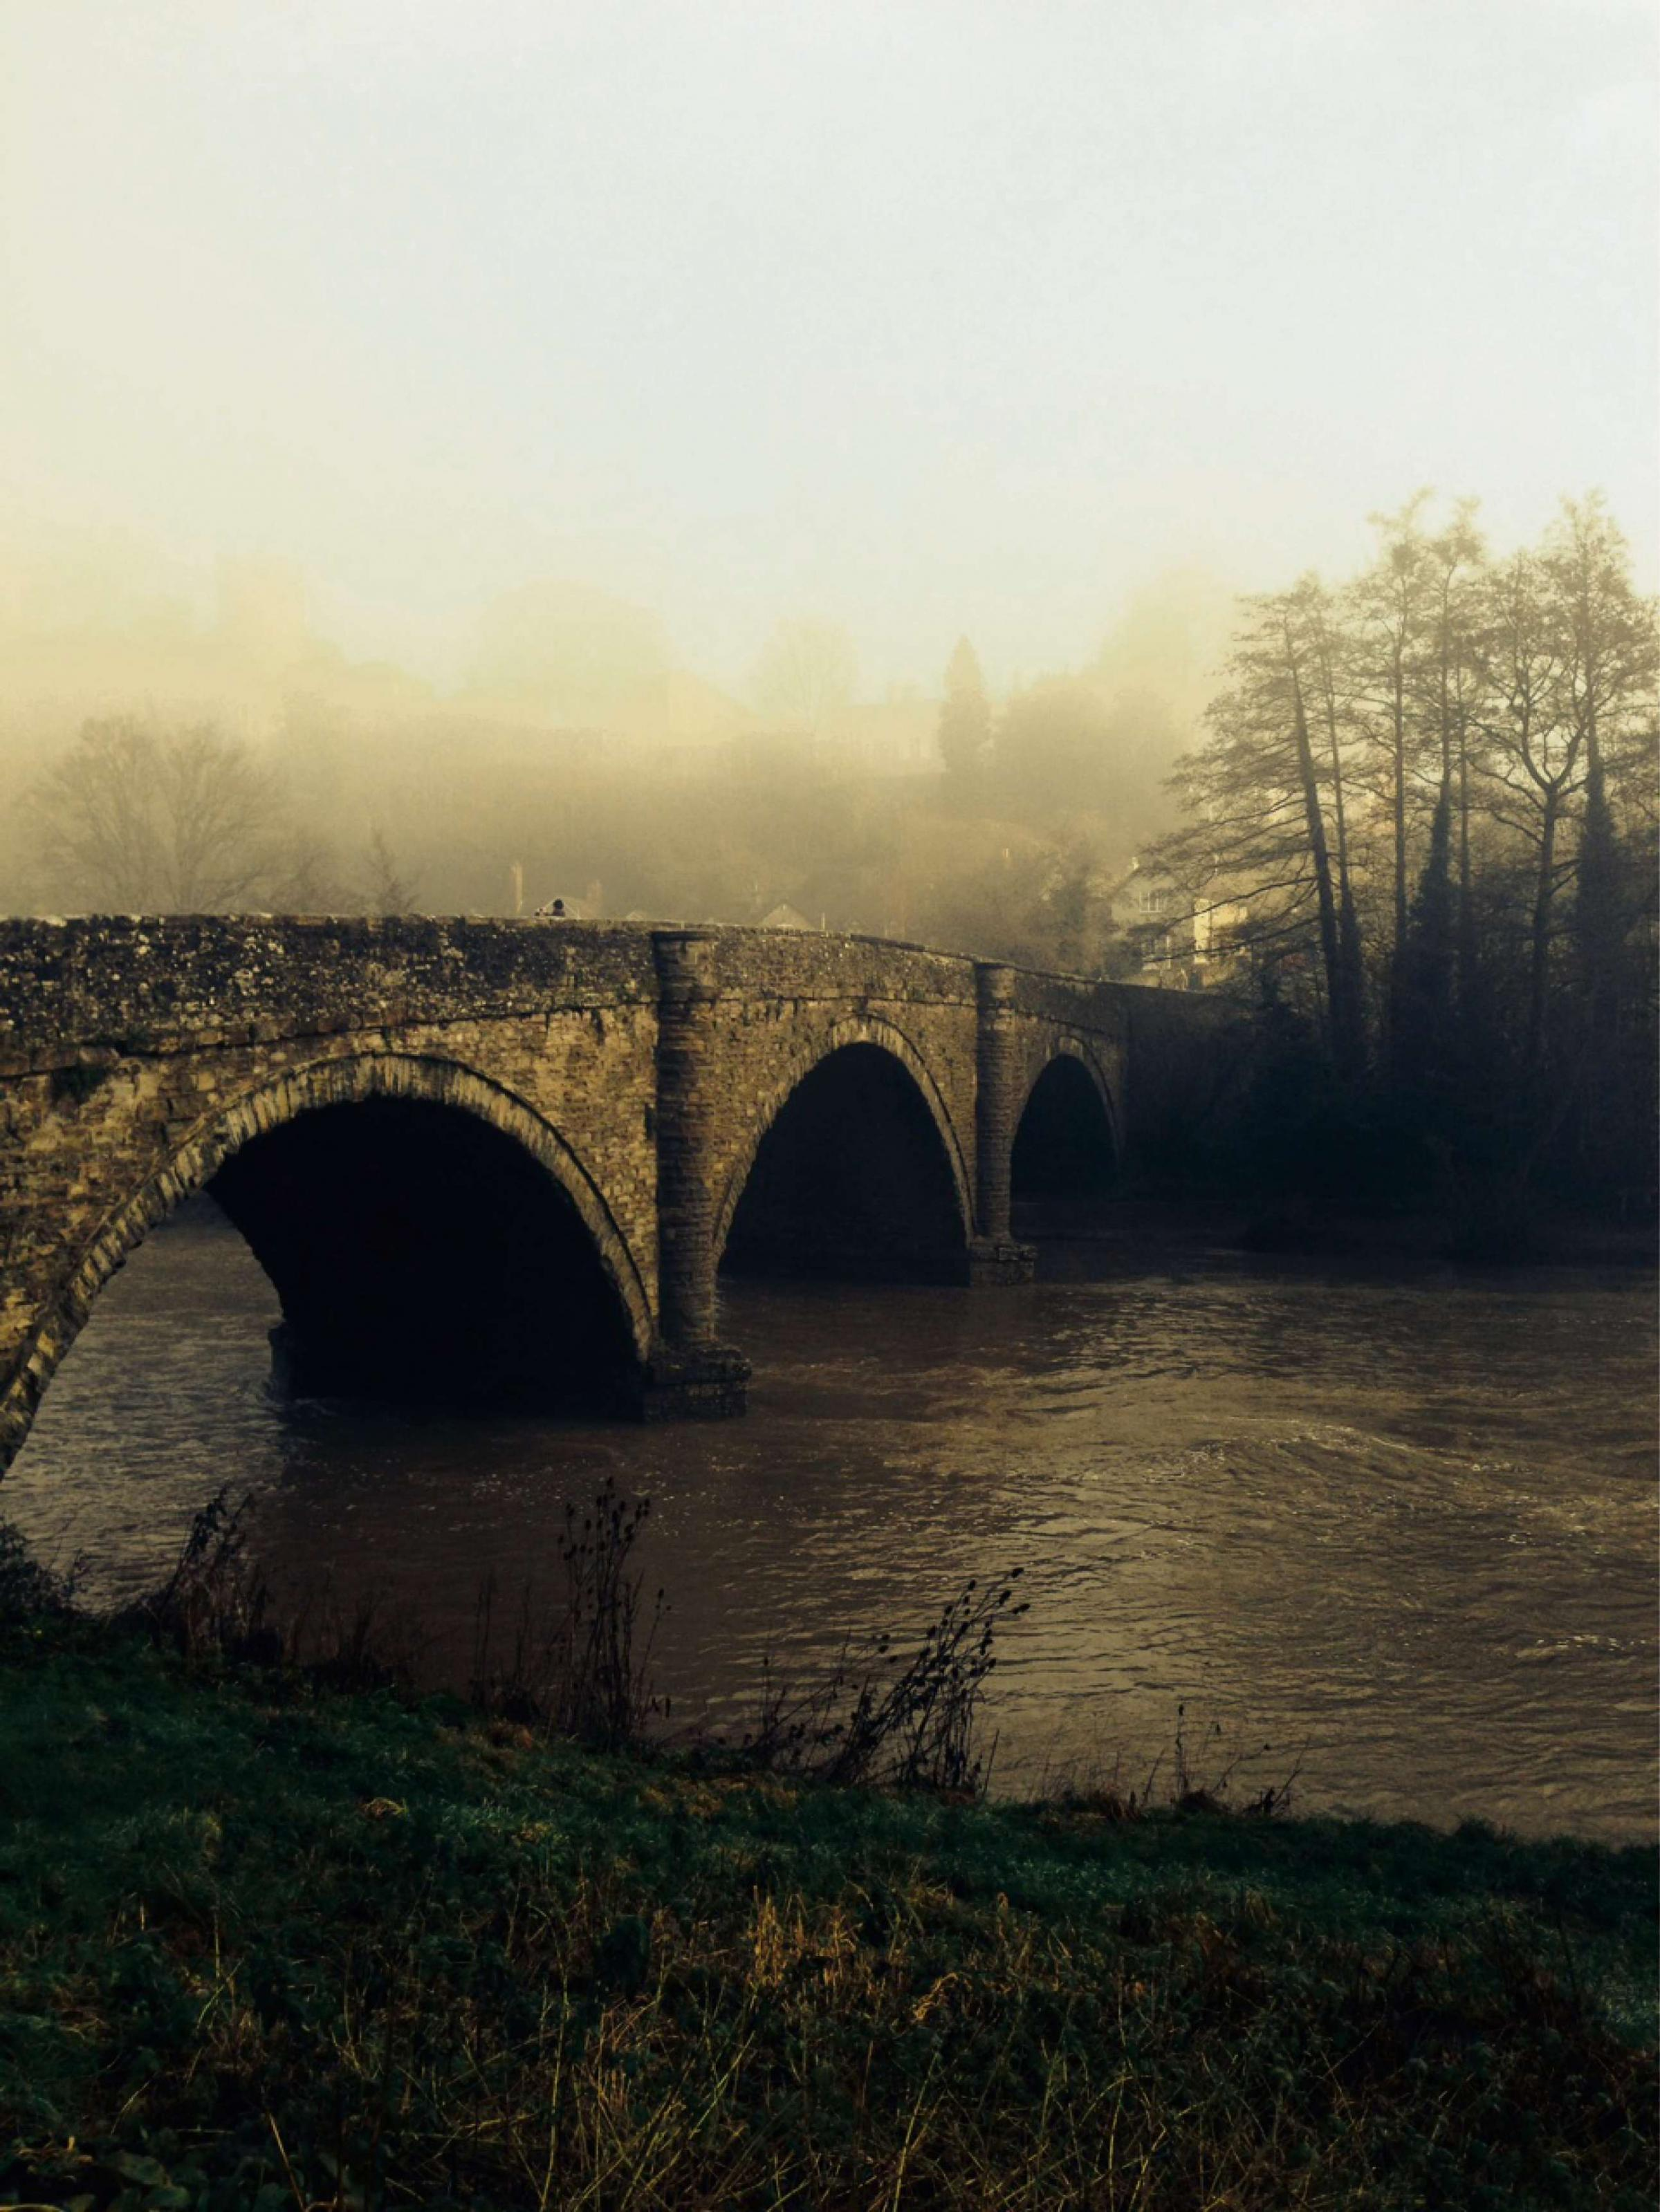 River Teme provides beautiful mid winter images